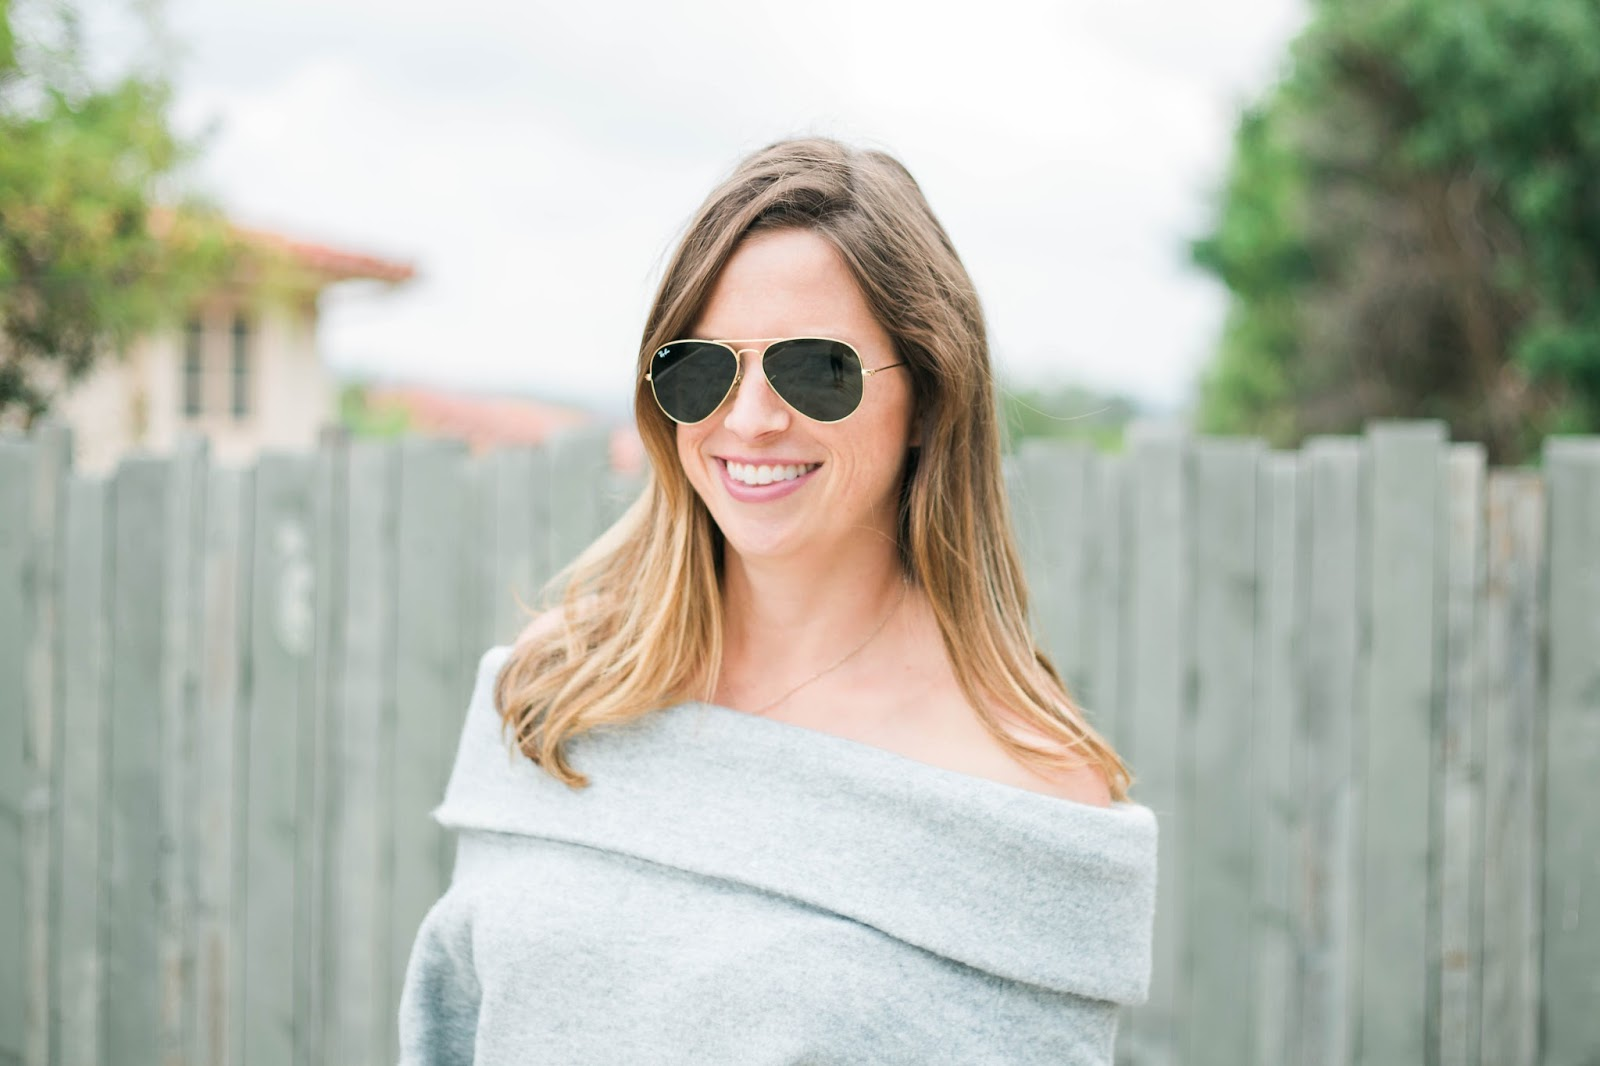 ray-ban and sweater outfit